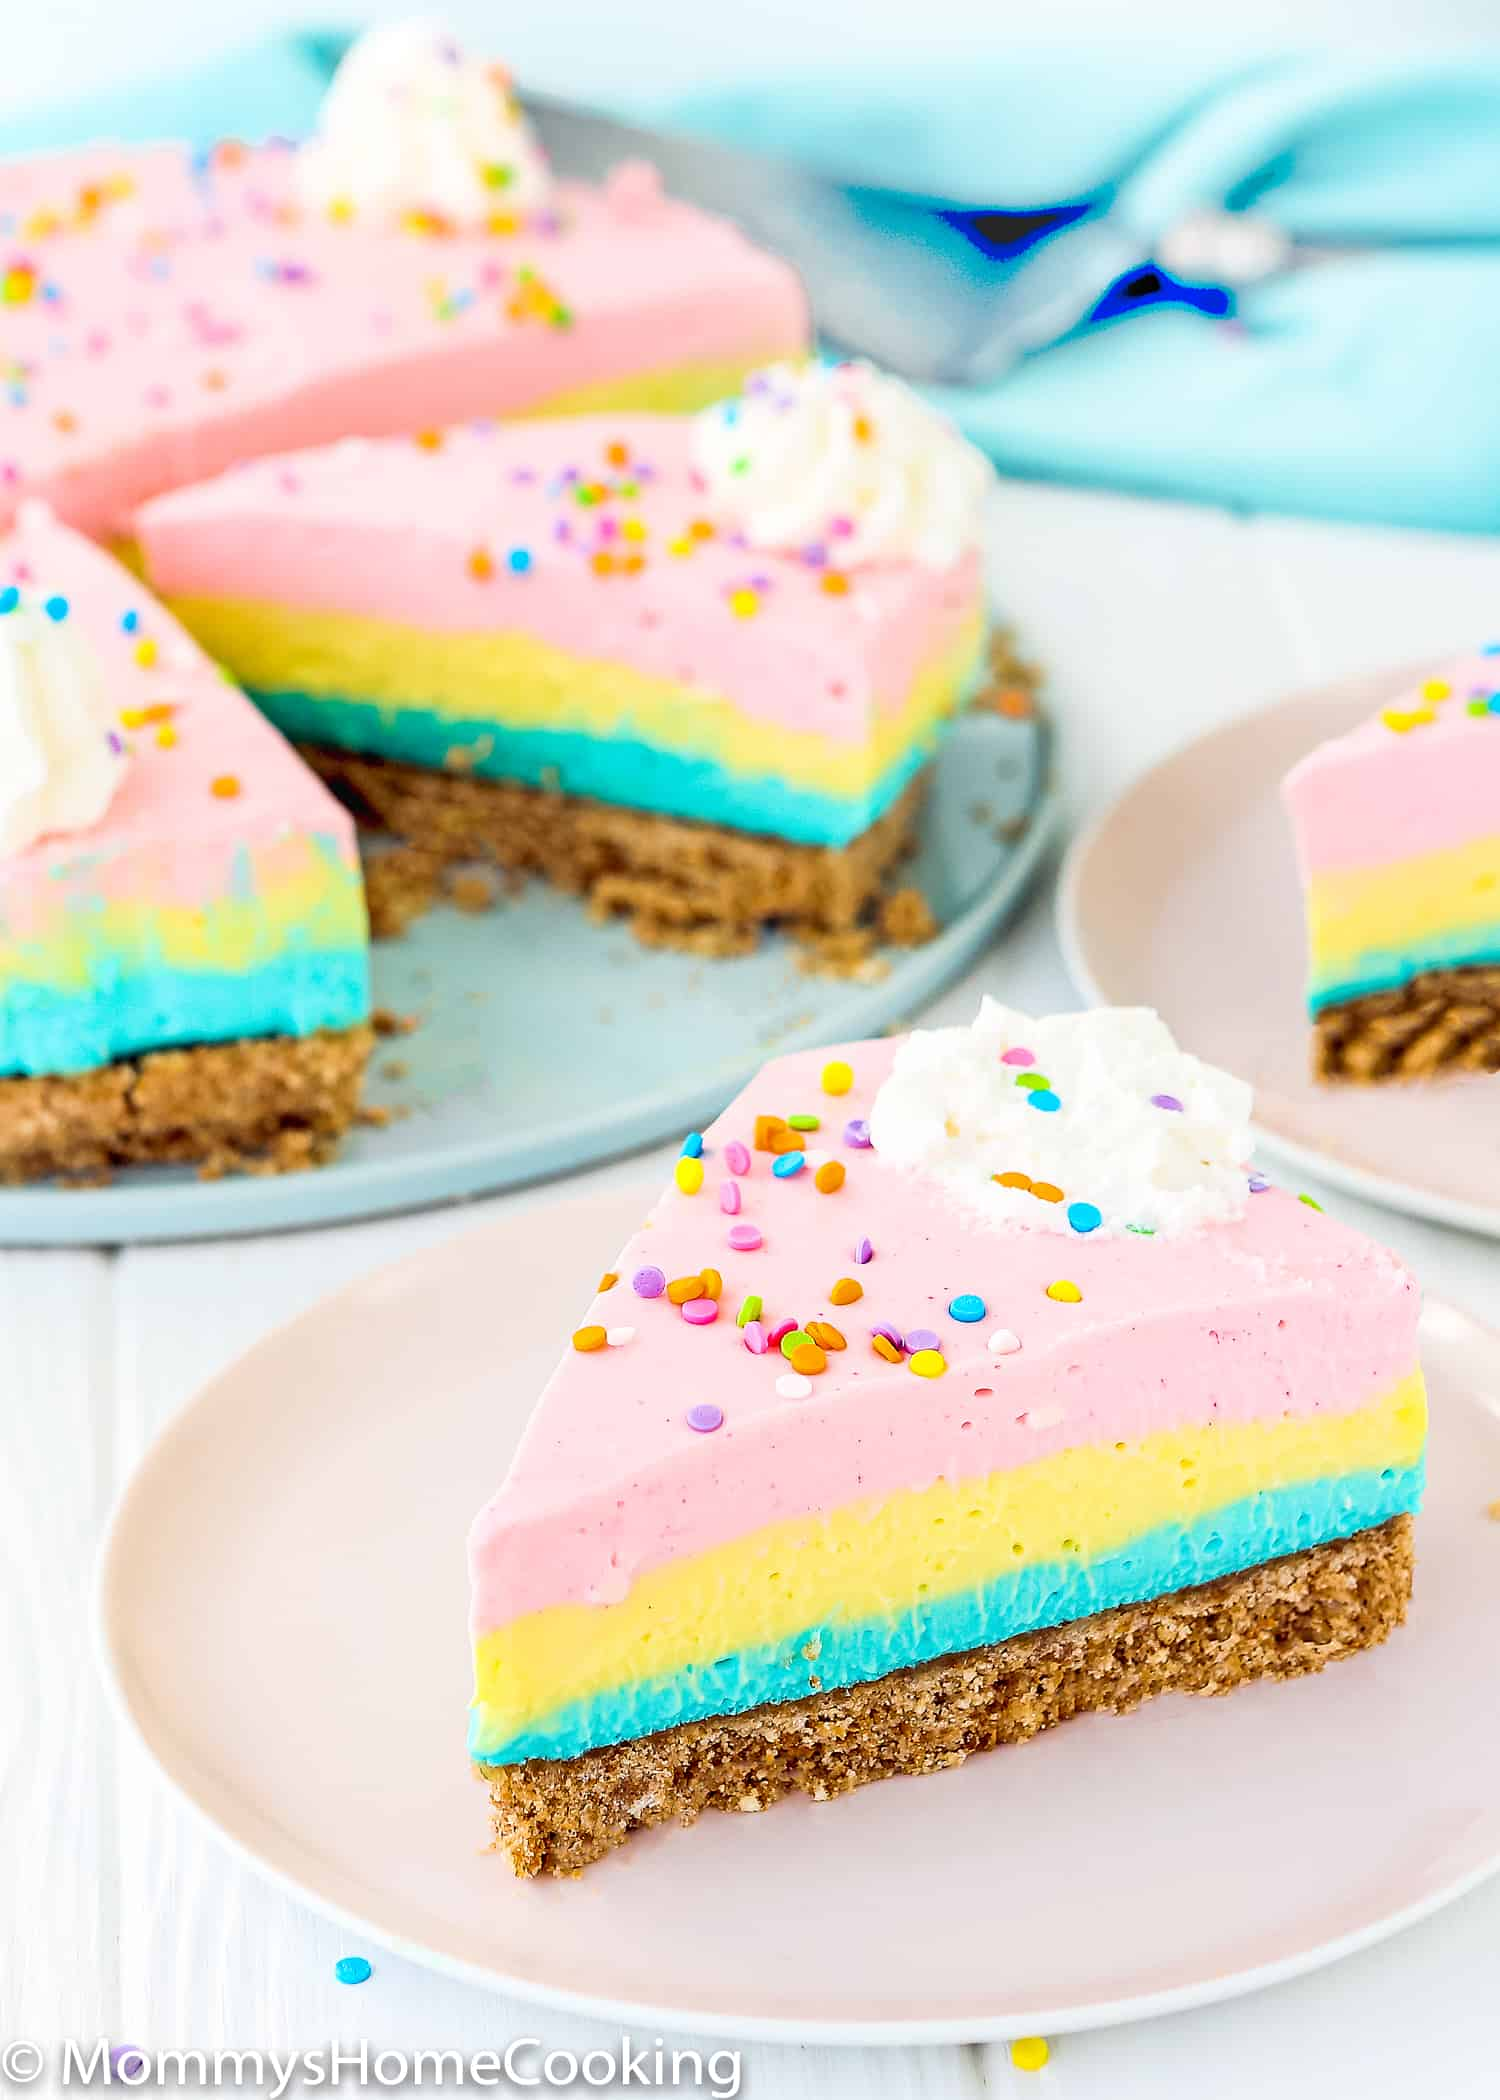 a slice of a pink, yellow and blue no-bake cheesecake over a pink plate